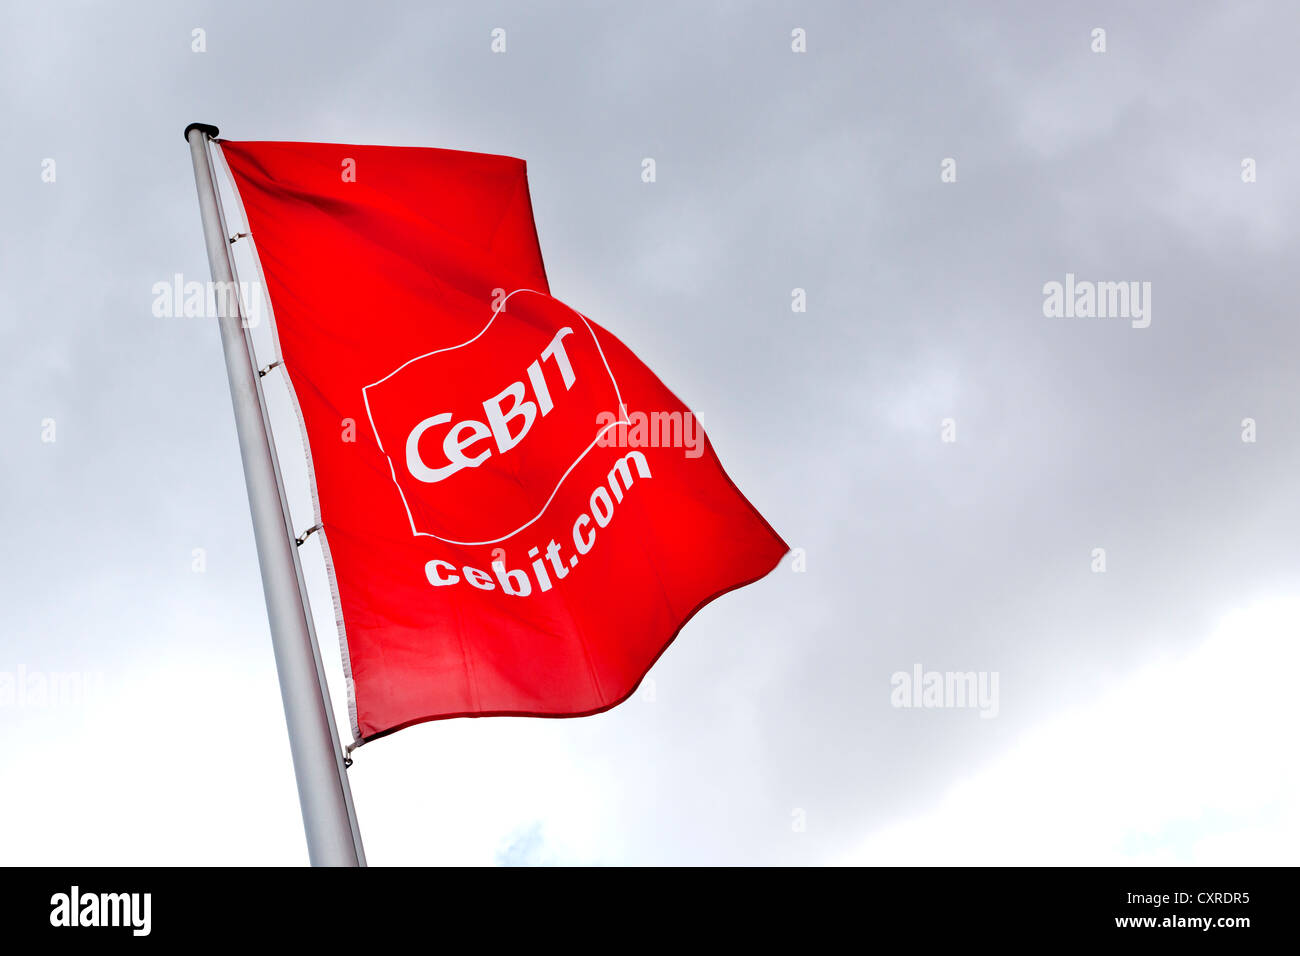 Flag with the CeBIT logo, international computer expo, Hannover, Lower Saxony, Germany, Europe - Stock Image